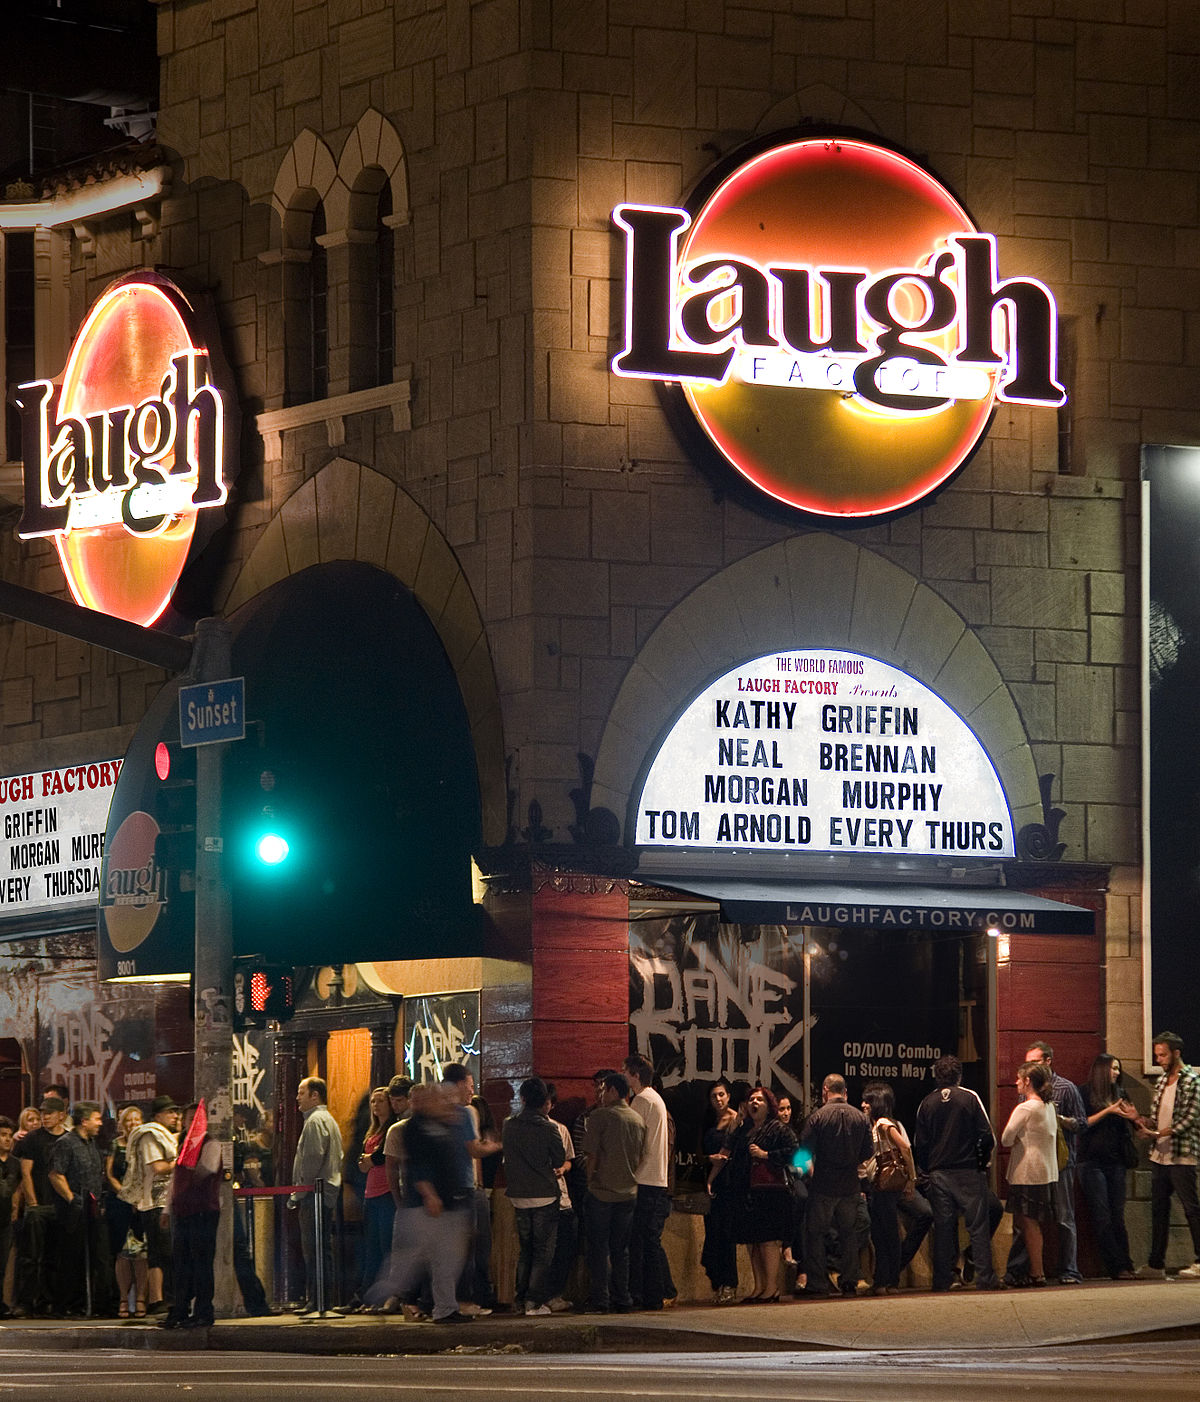 In a nutshell, the Laugh Factory is where to go if you want to see comedy celebrities. Its round glowing orange sign is an iconic image synonymous with LA comedy.